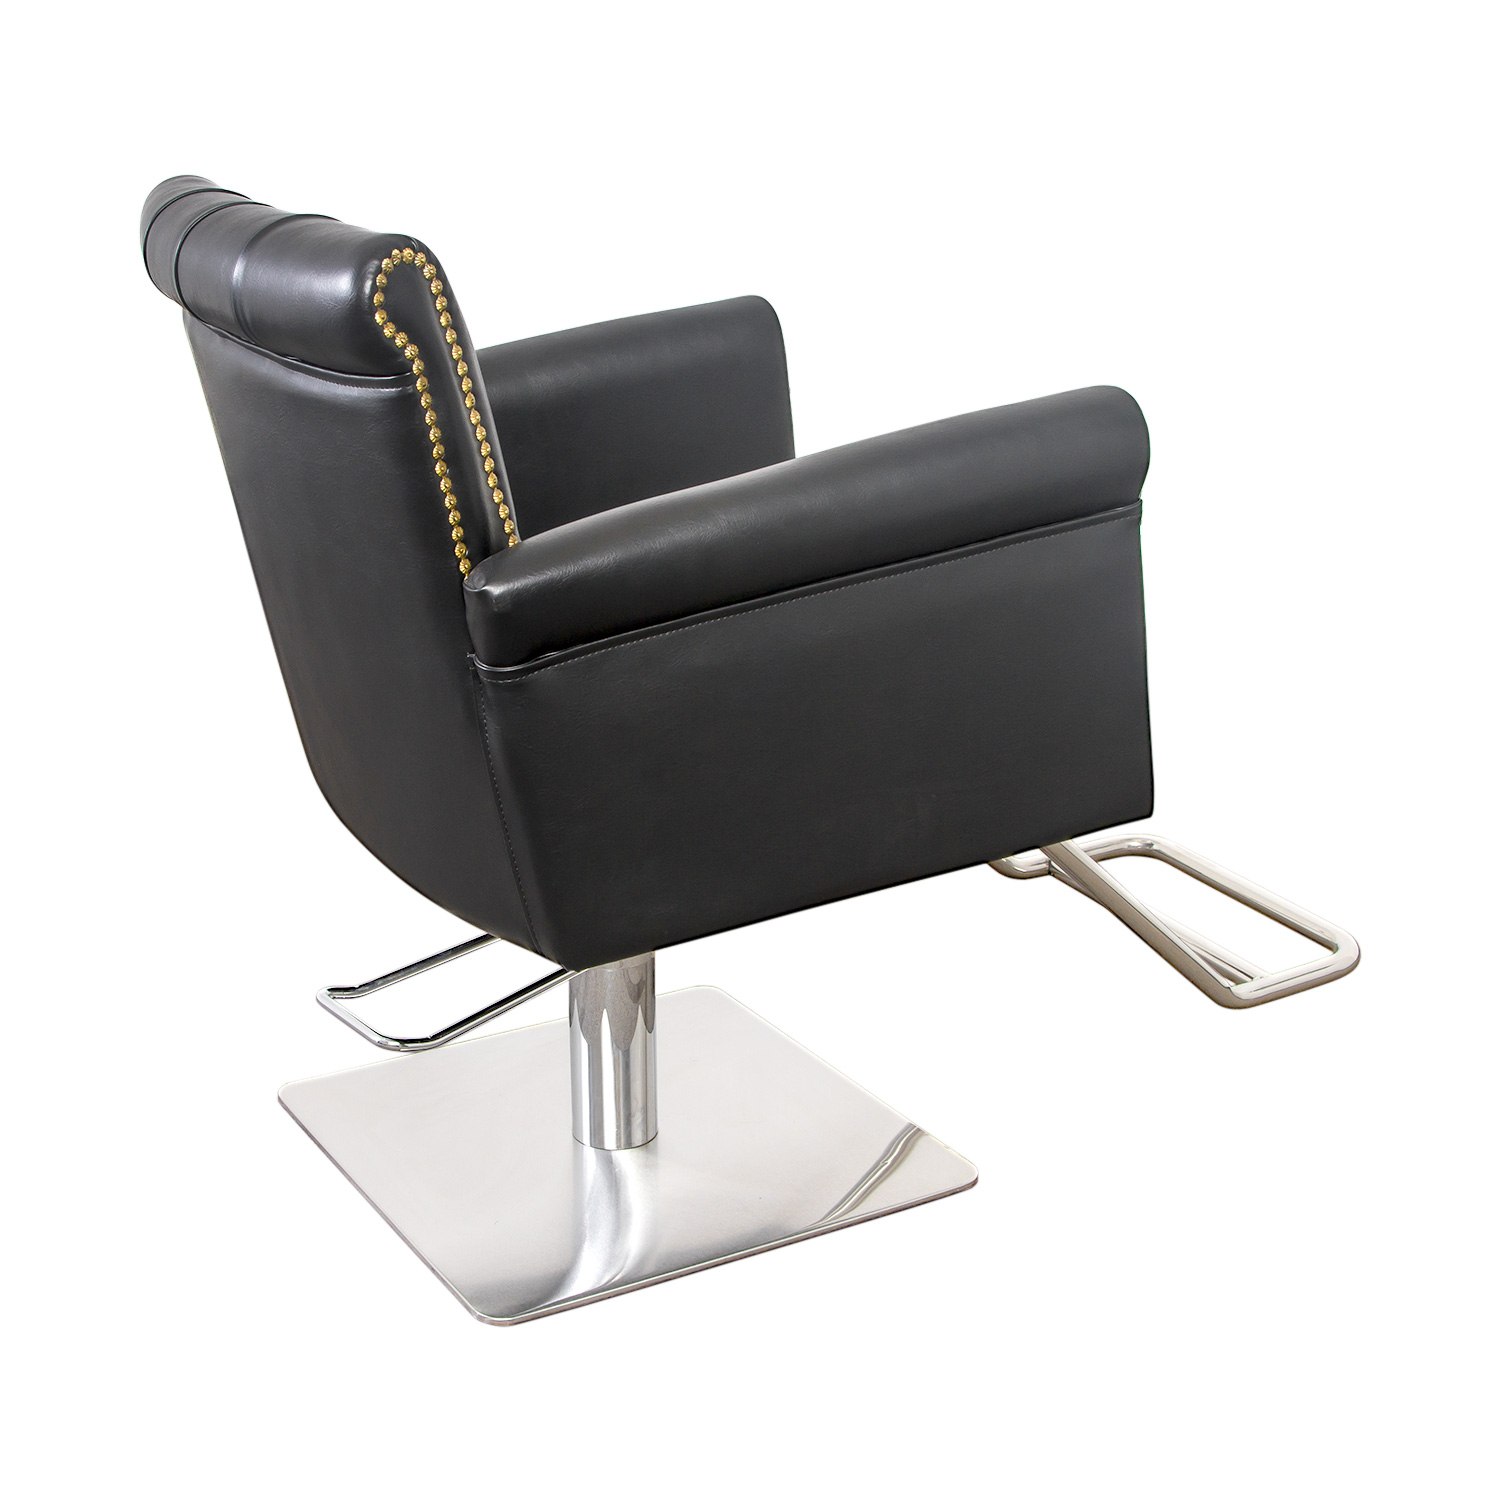 Winston Hair Chair with Nailhead Trim and Tufting alternative product image 3